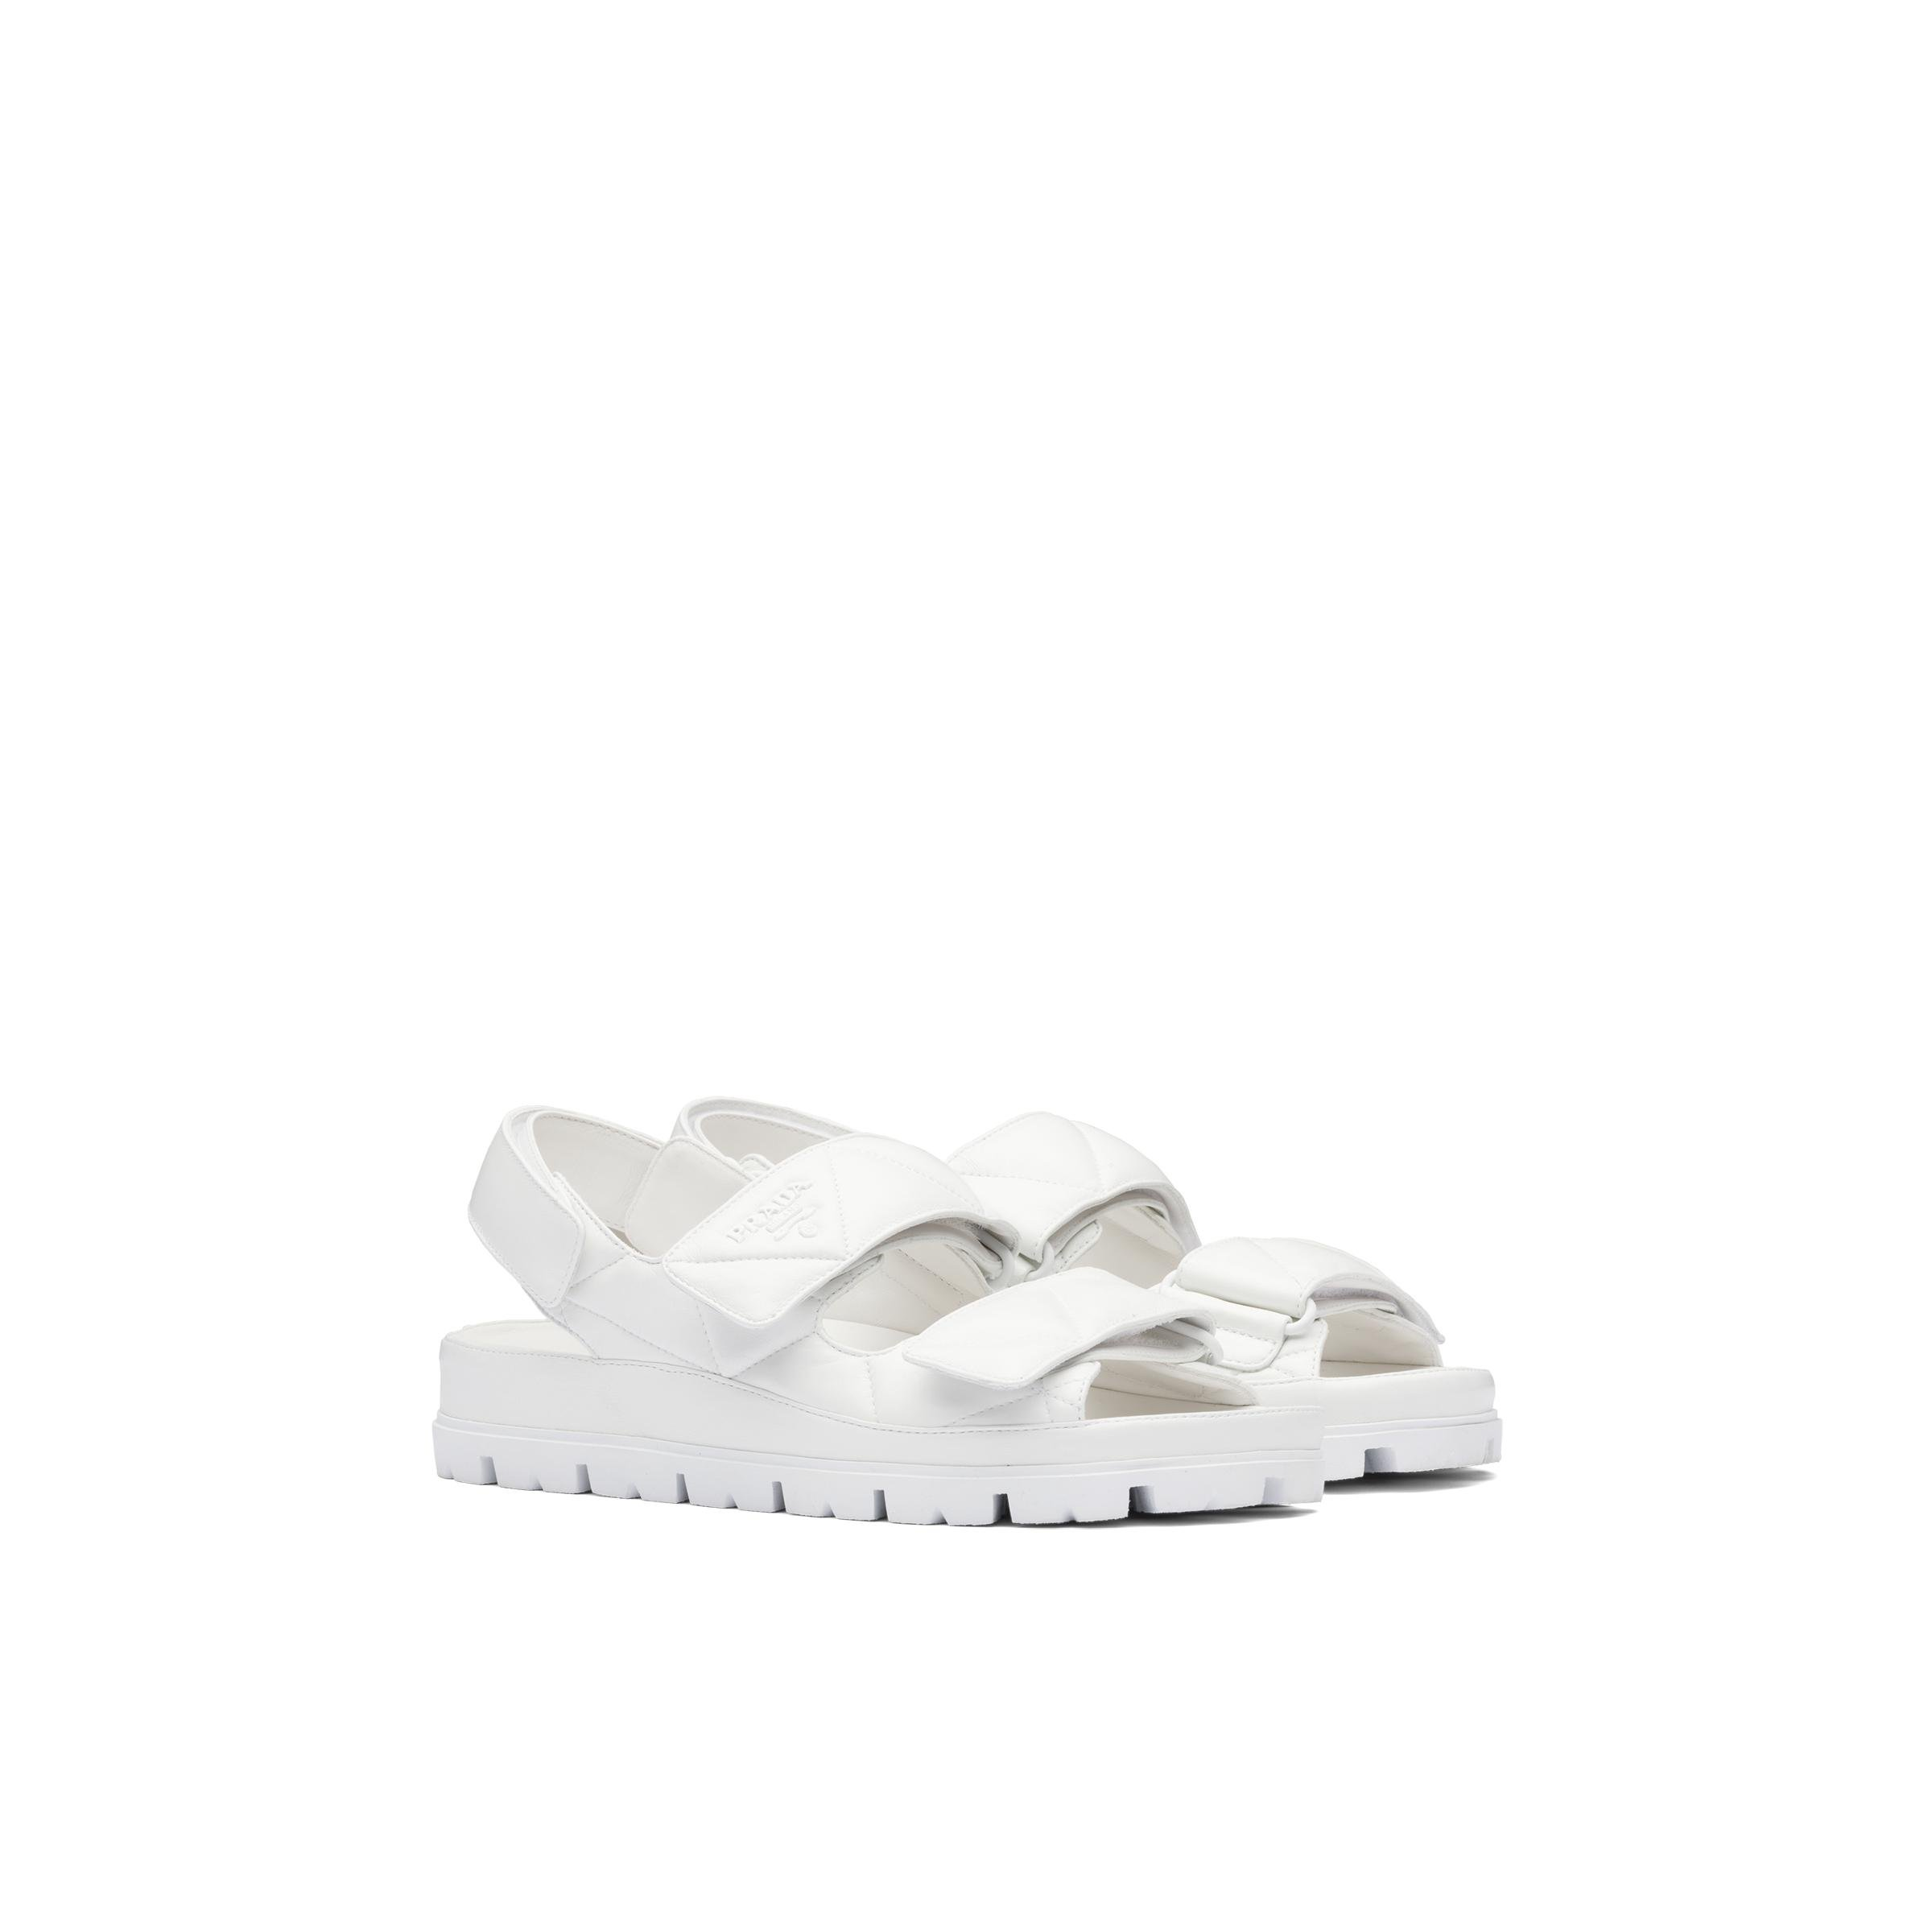 Padded Nappa Leather Sandals Women White 0